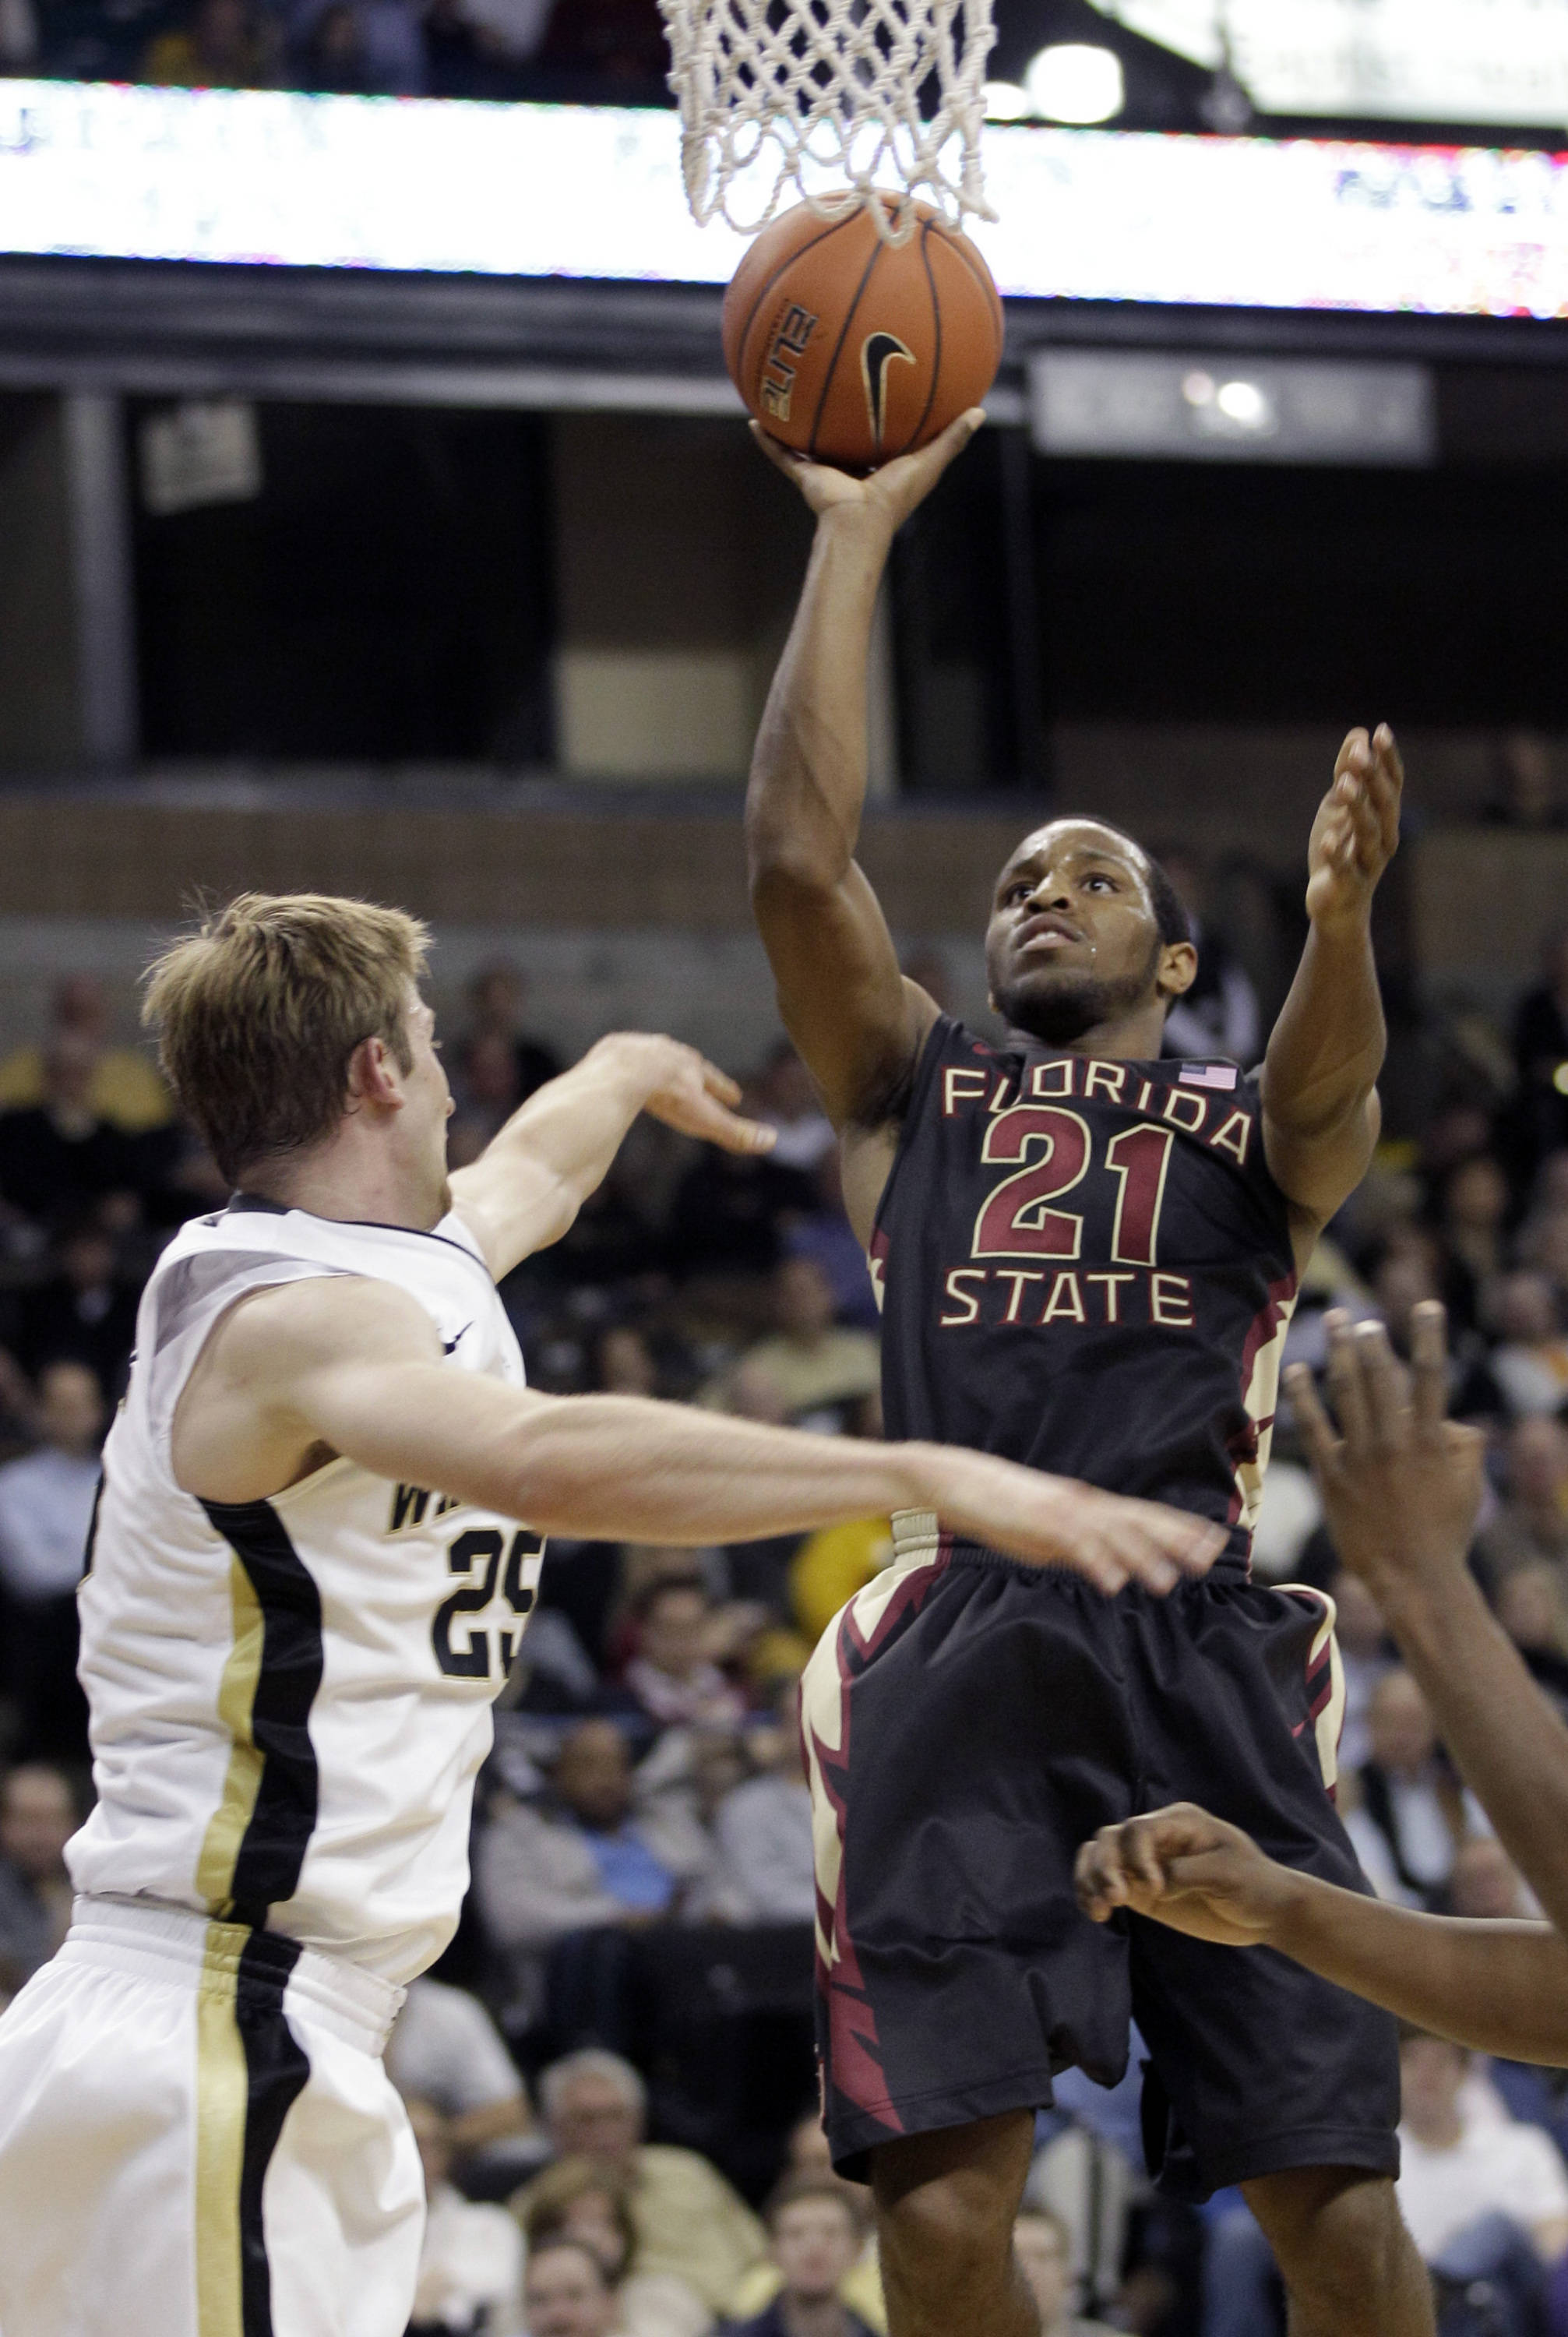 Florida State's Michael Snaer shoots over Wake Forest's Nikita Mescheriakov. (AP Photo/Chuck Burton)